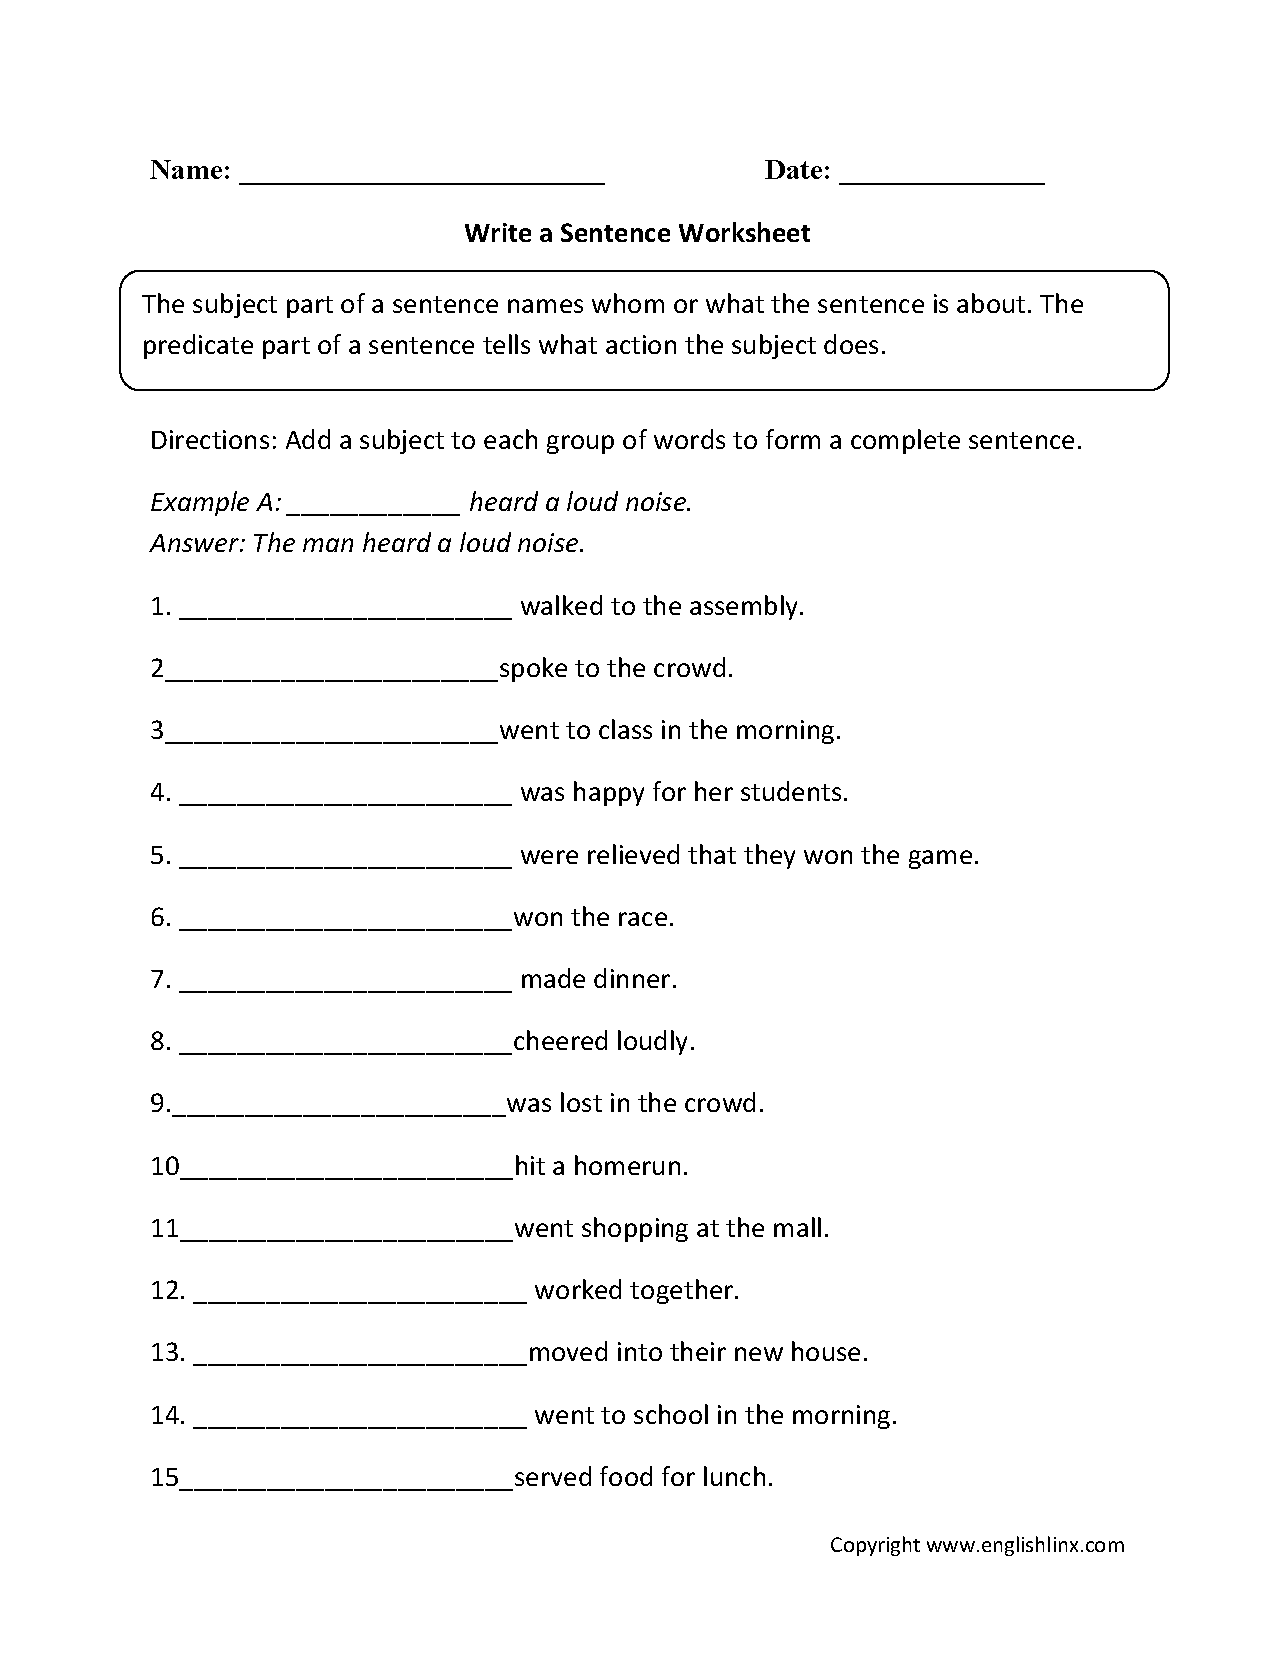 Free Worksheet Cut And Paste Sentence Worksheets cut and paste sentence worksheets abitlikethis furthermore abstract nouns worksheet moreover paste